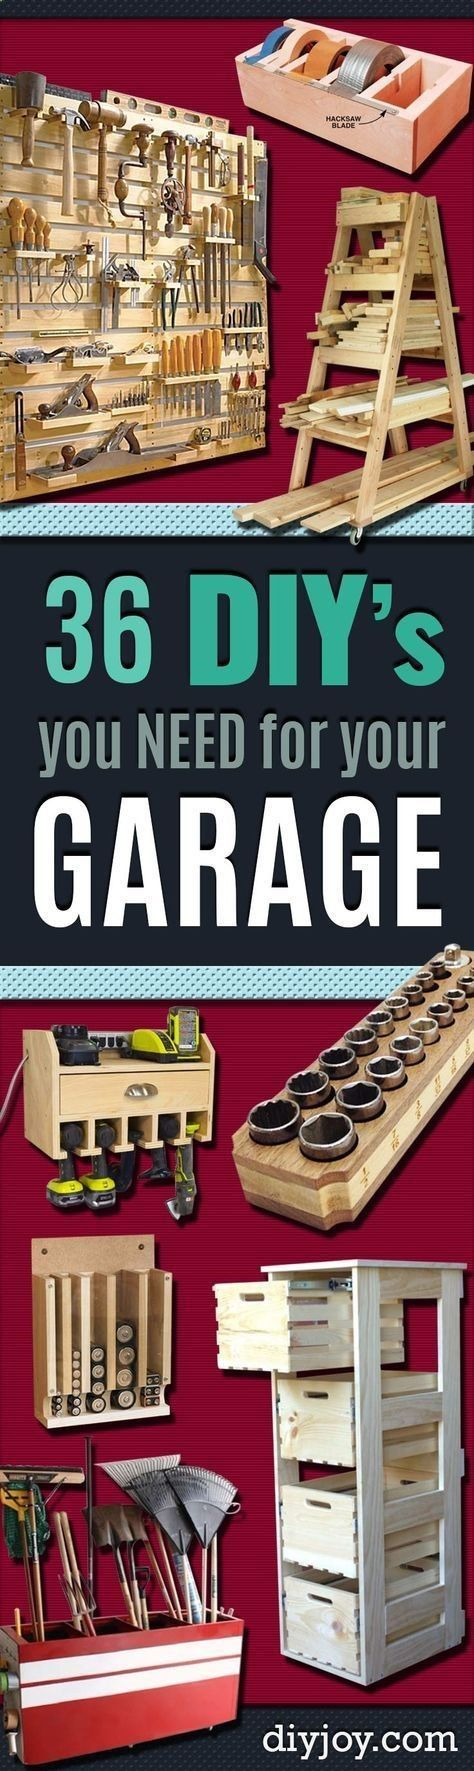 Diy projects your garage needs do it yourself garage makeover ideas diy projects your garage needs do it yourself garage makeover ideas include storage organization solutioingenieria Images